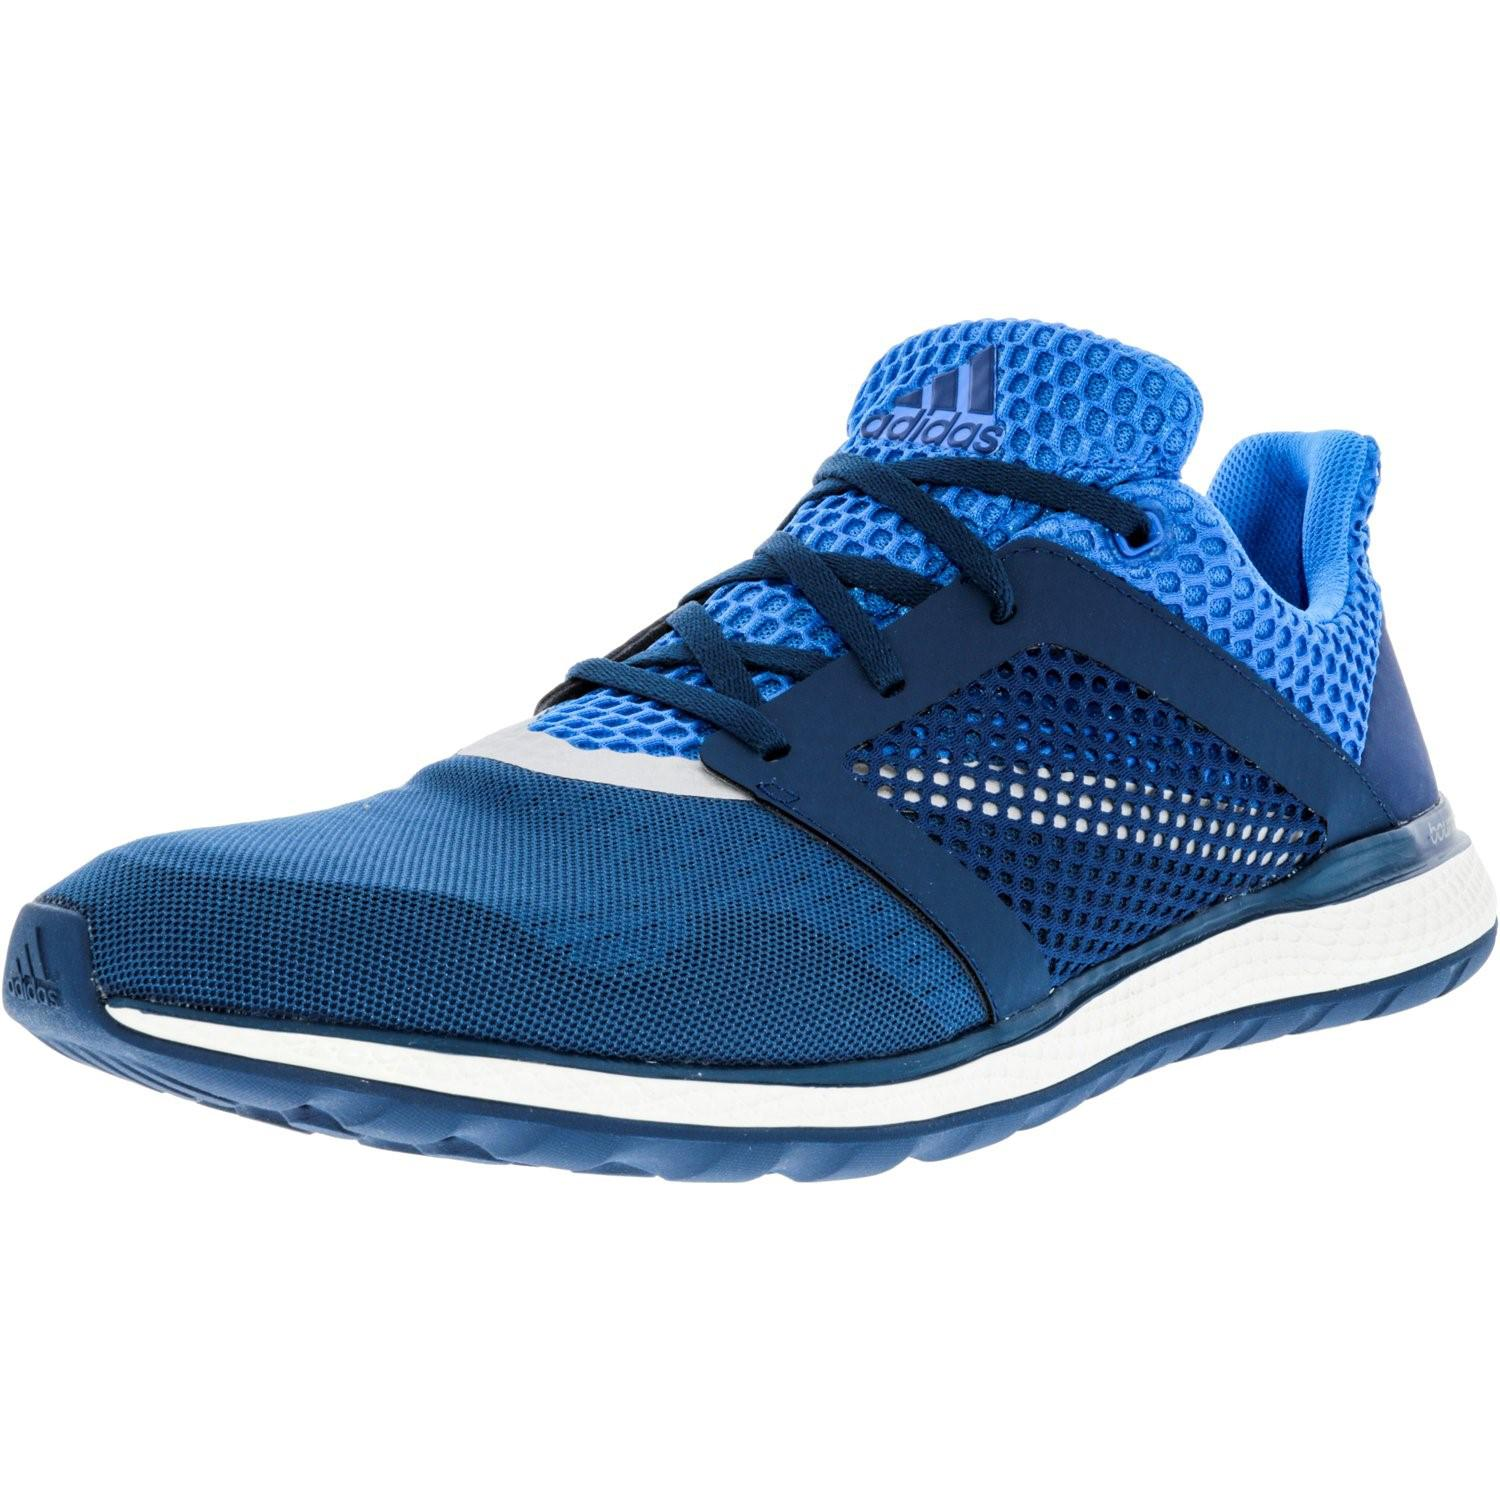 Lyst - Adidas Energy Bounce 2 Low Top Running Shoe - 13m in Blue for Men 2c15990e6